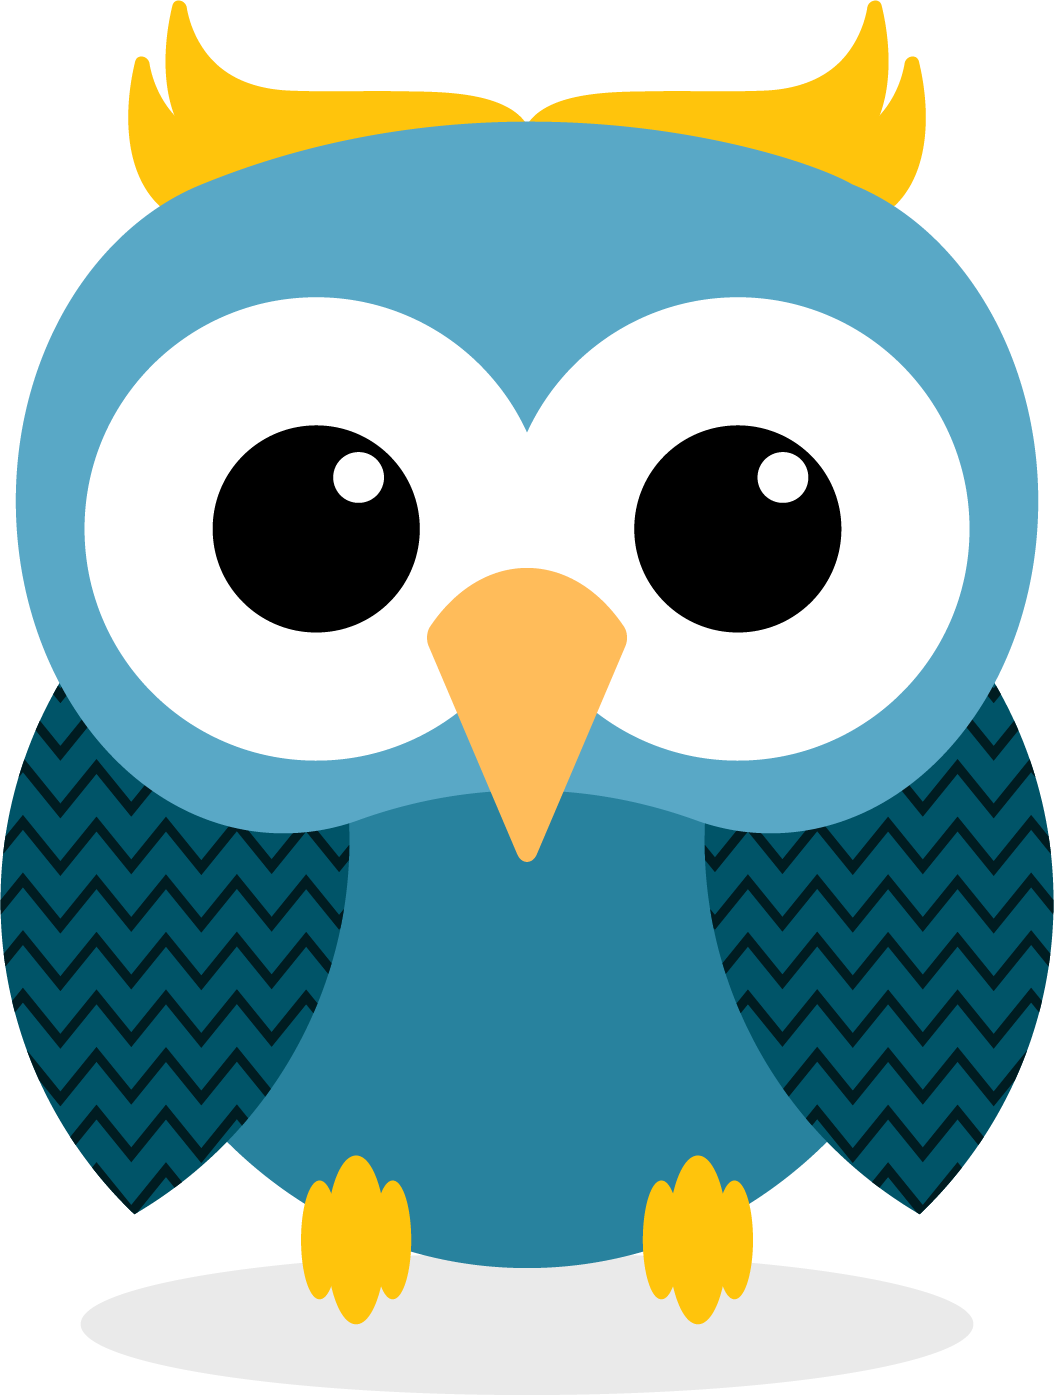 Owl clip art transparent background. Png free images only